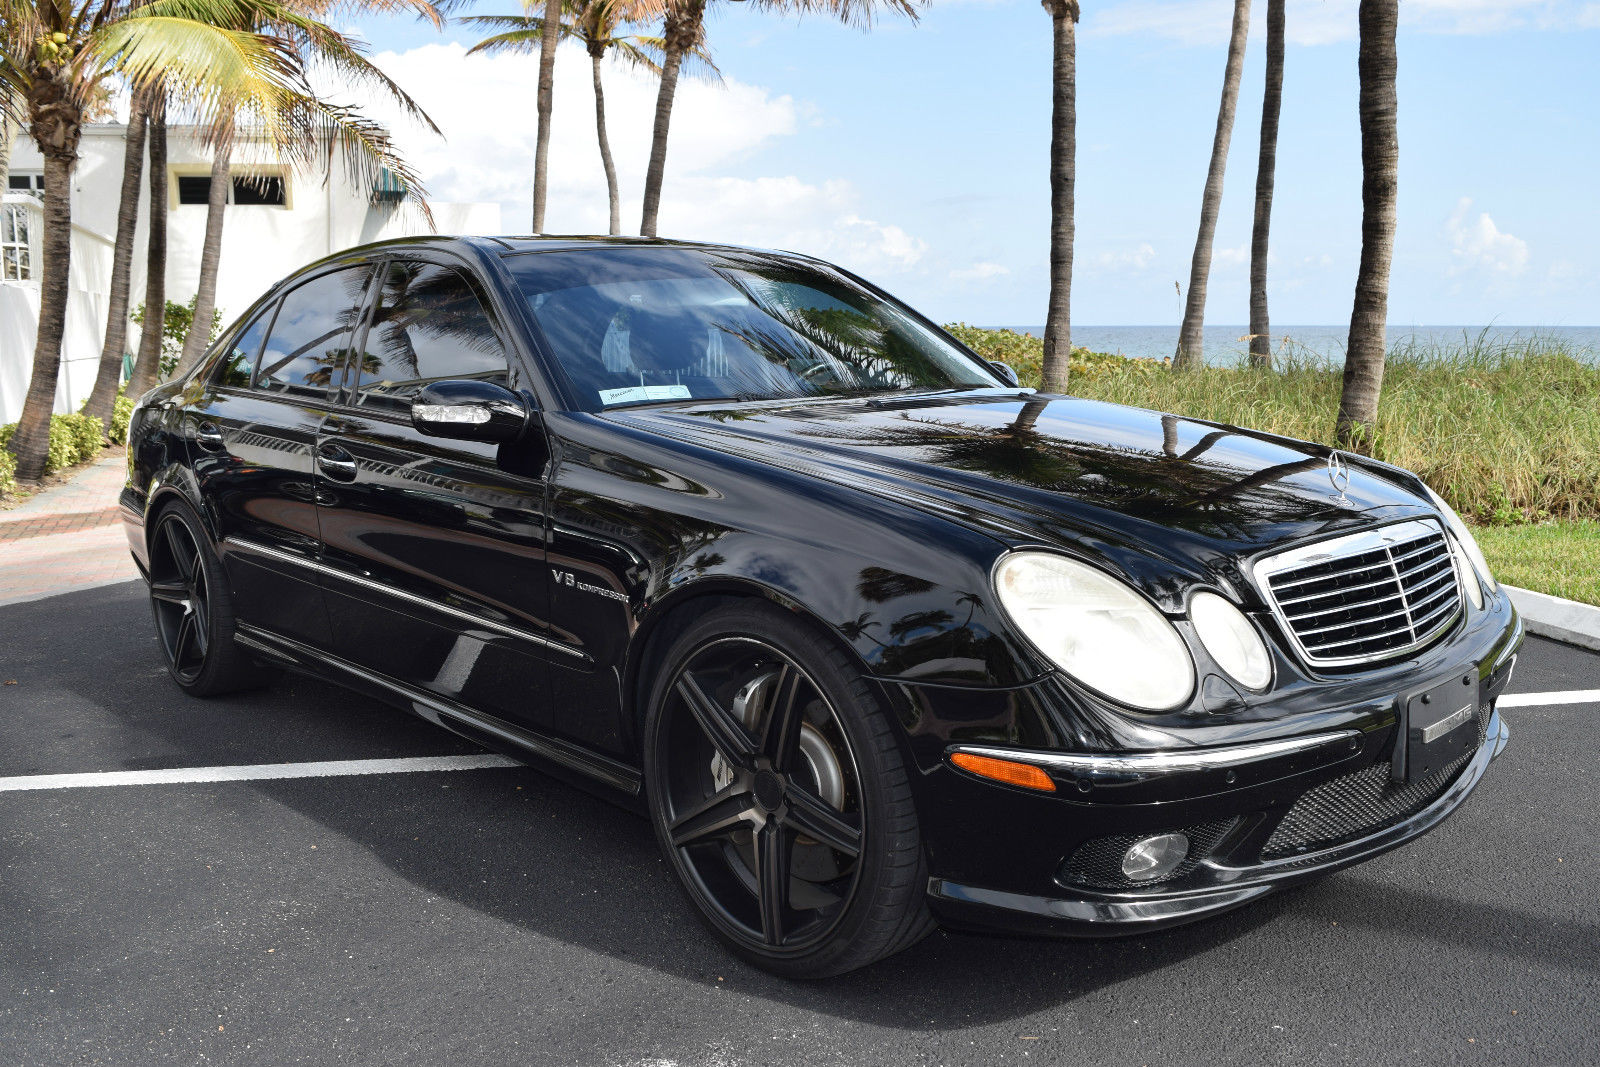 Benztuning 2006 mercedes benz w211 e55 amg on 20 niche for Mercedes benz e 55 amg